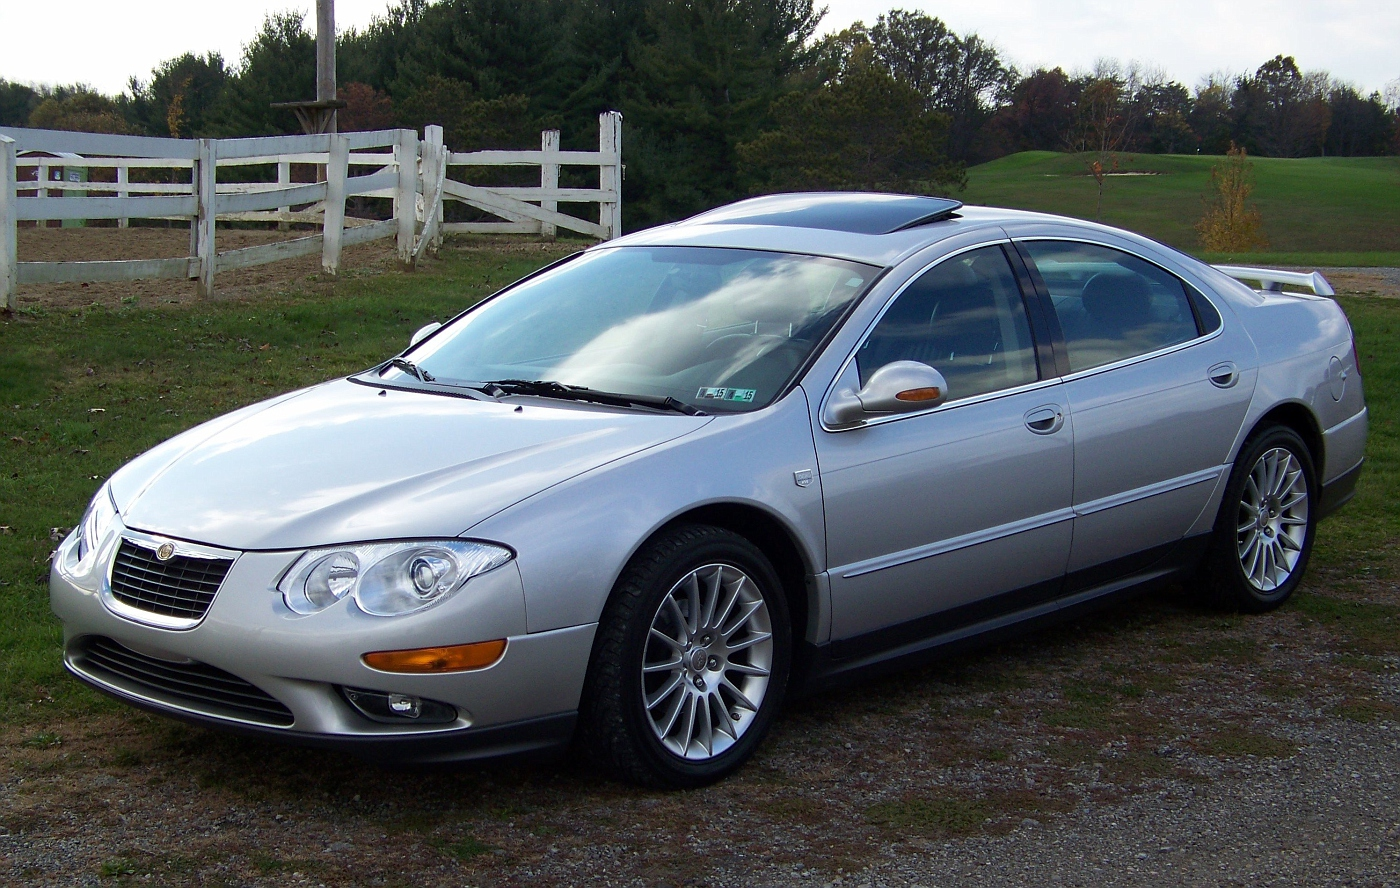 special image dodgeintrepid report forums for too dodge low s net chrysler this